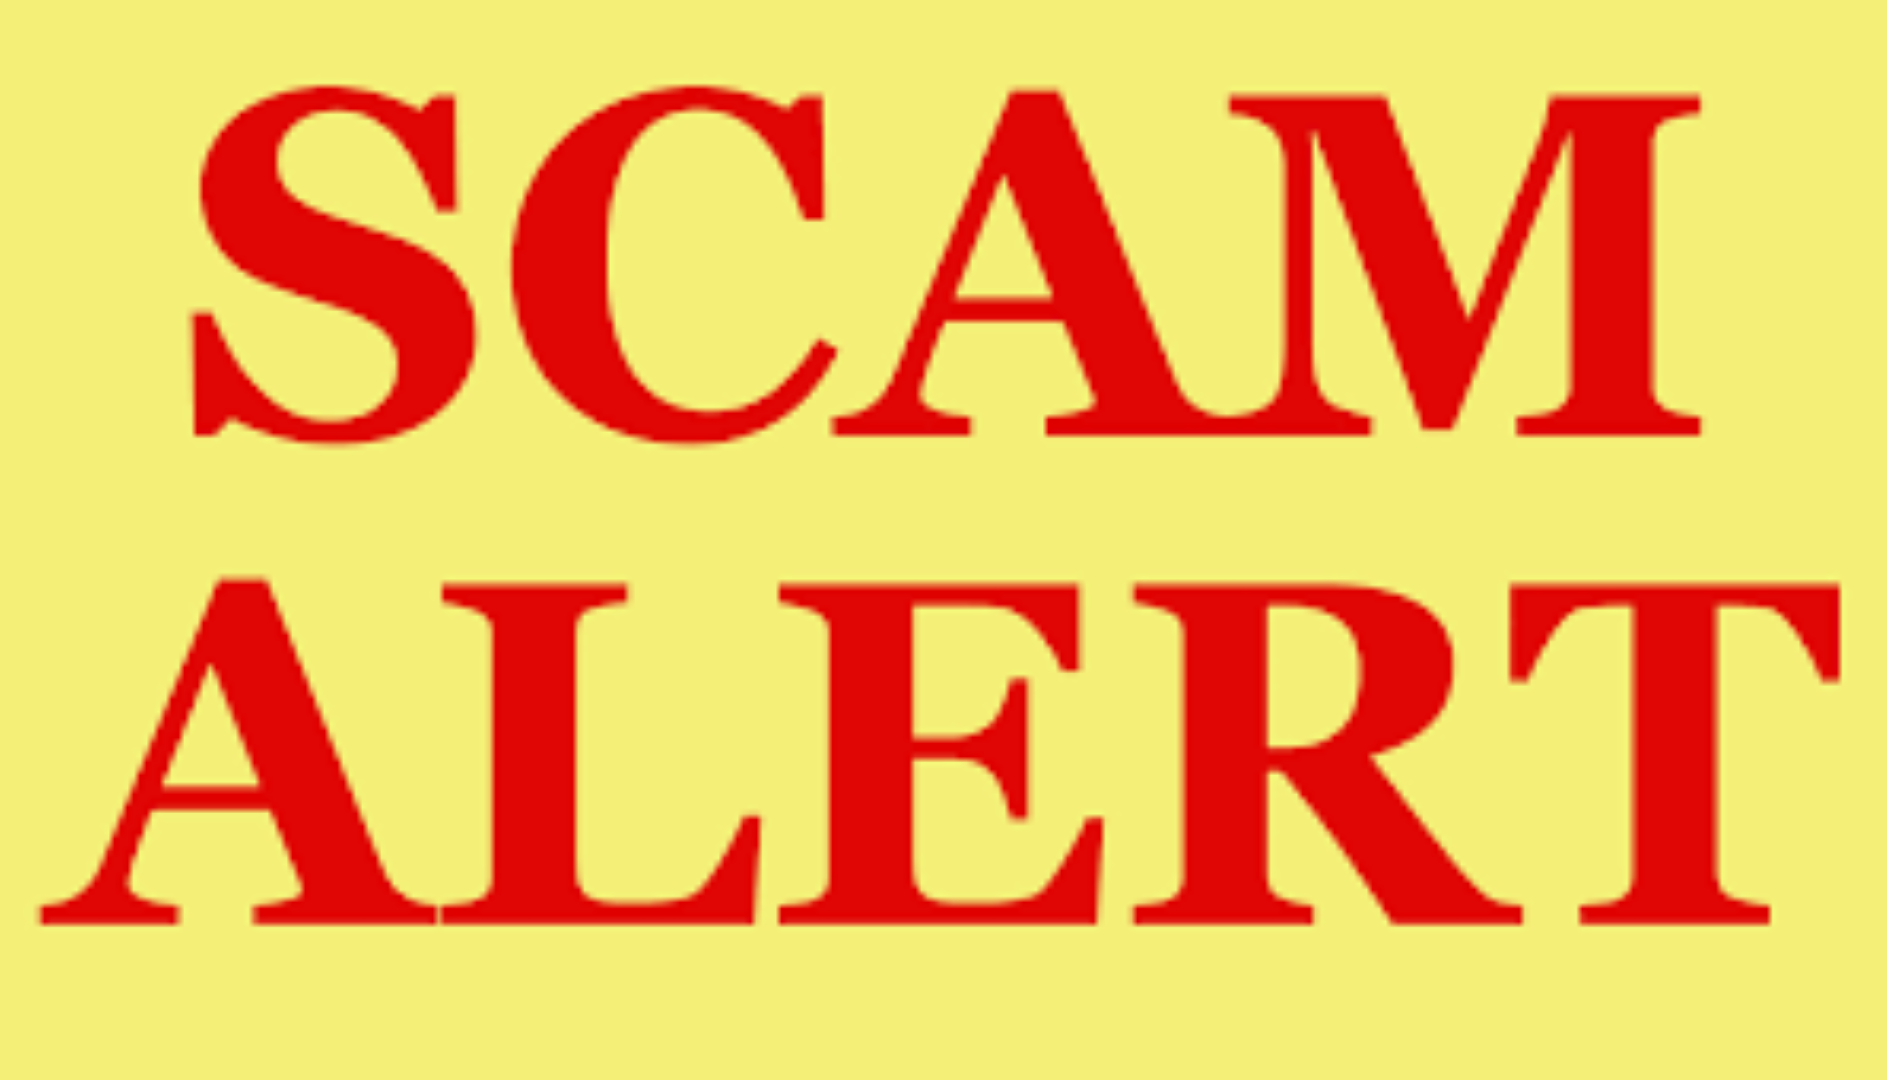 Scam Alert: Youths for Youth Initiative (YFYI)